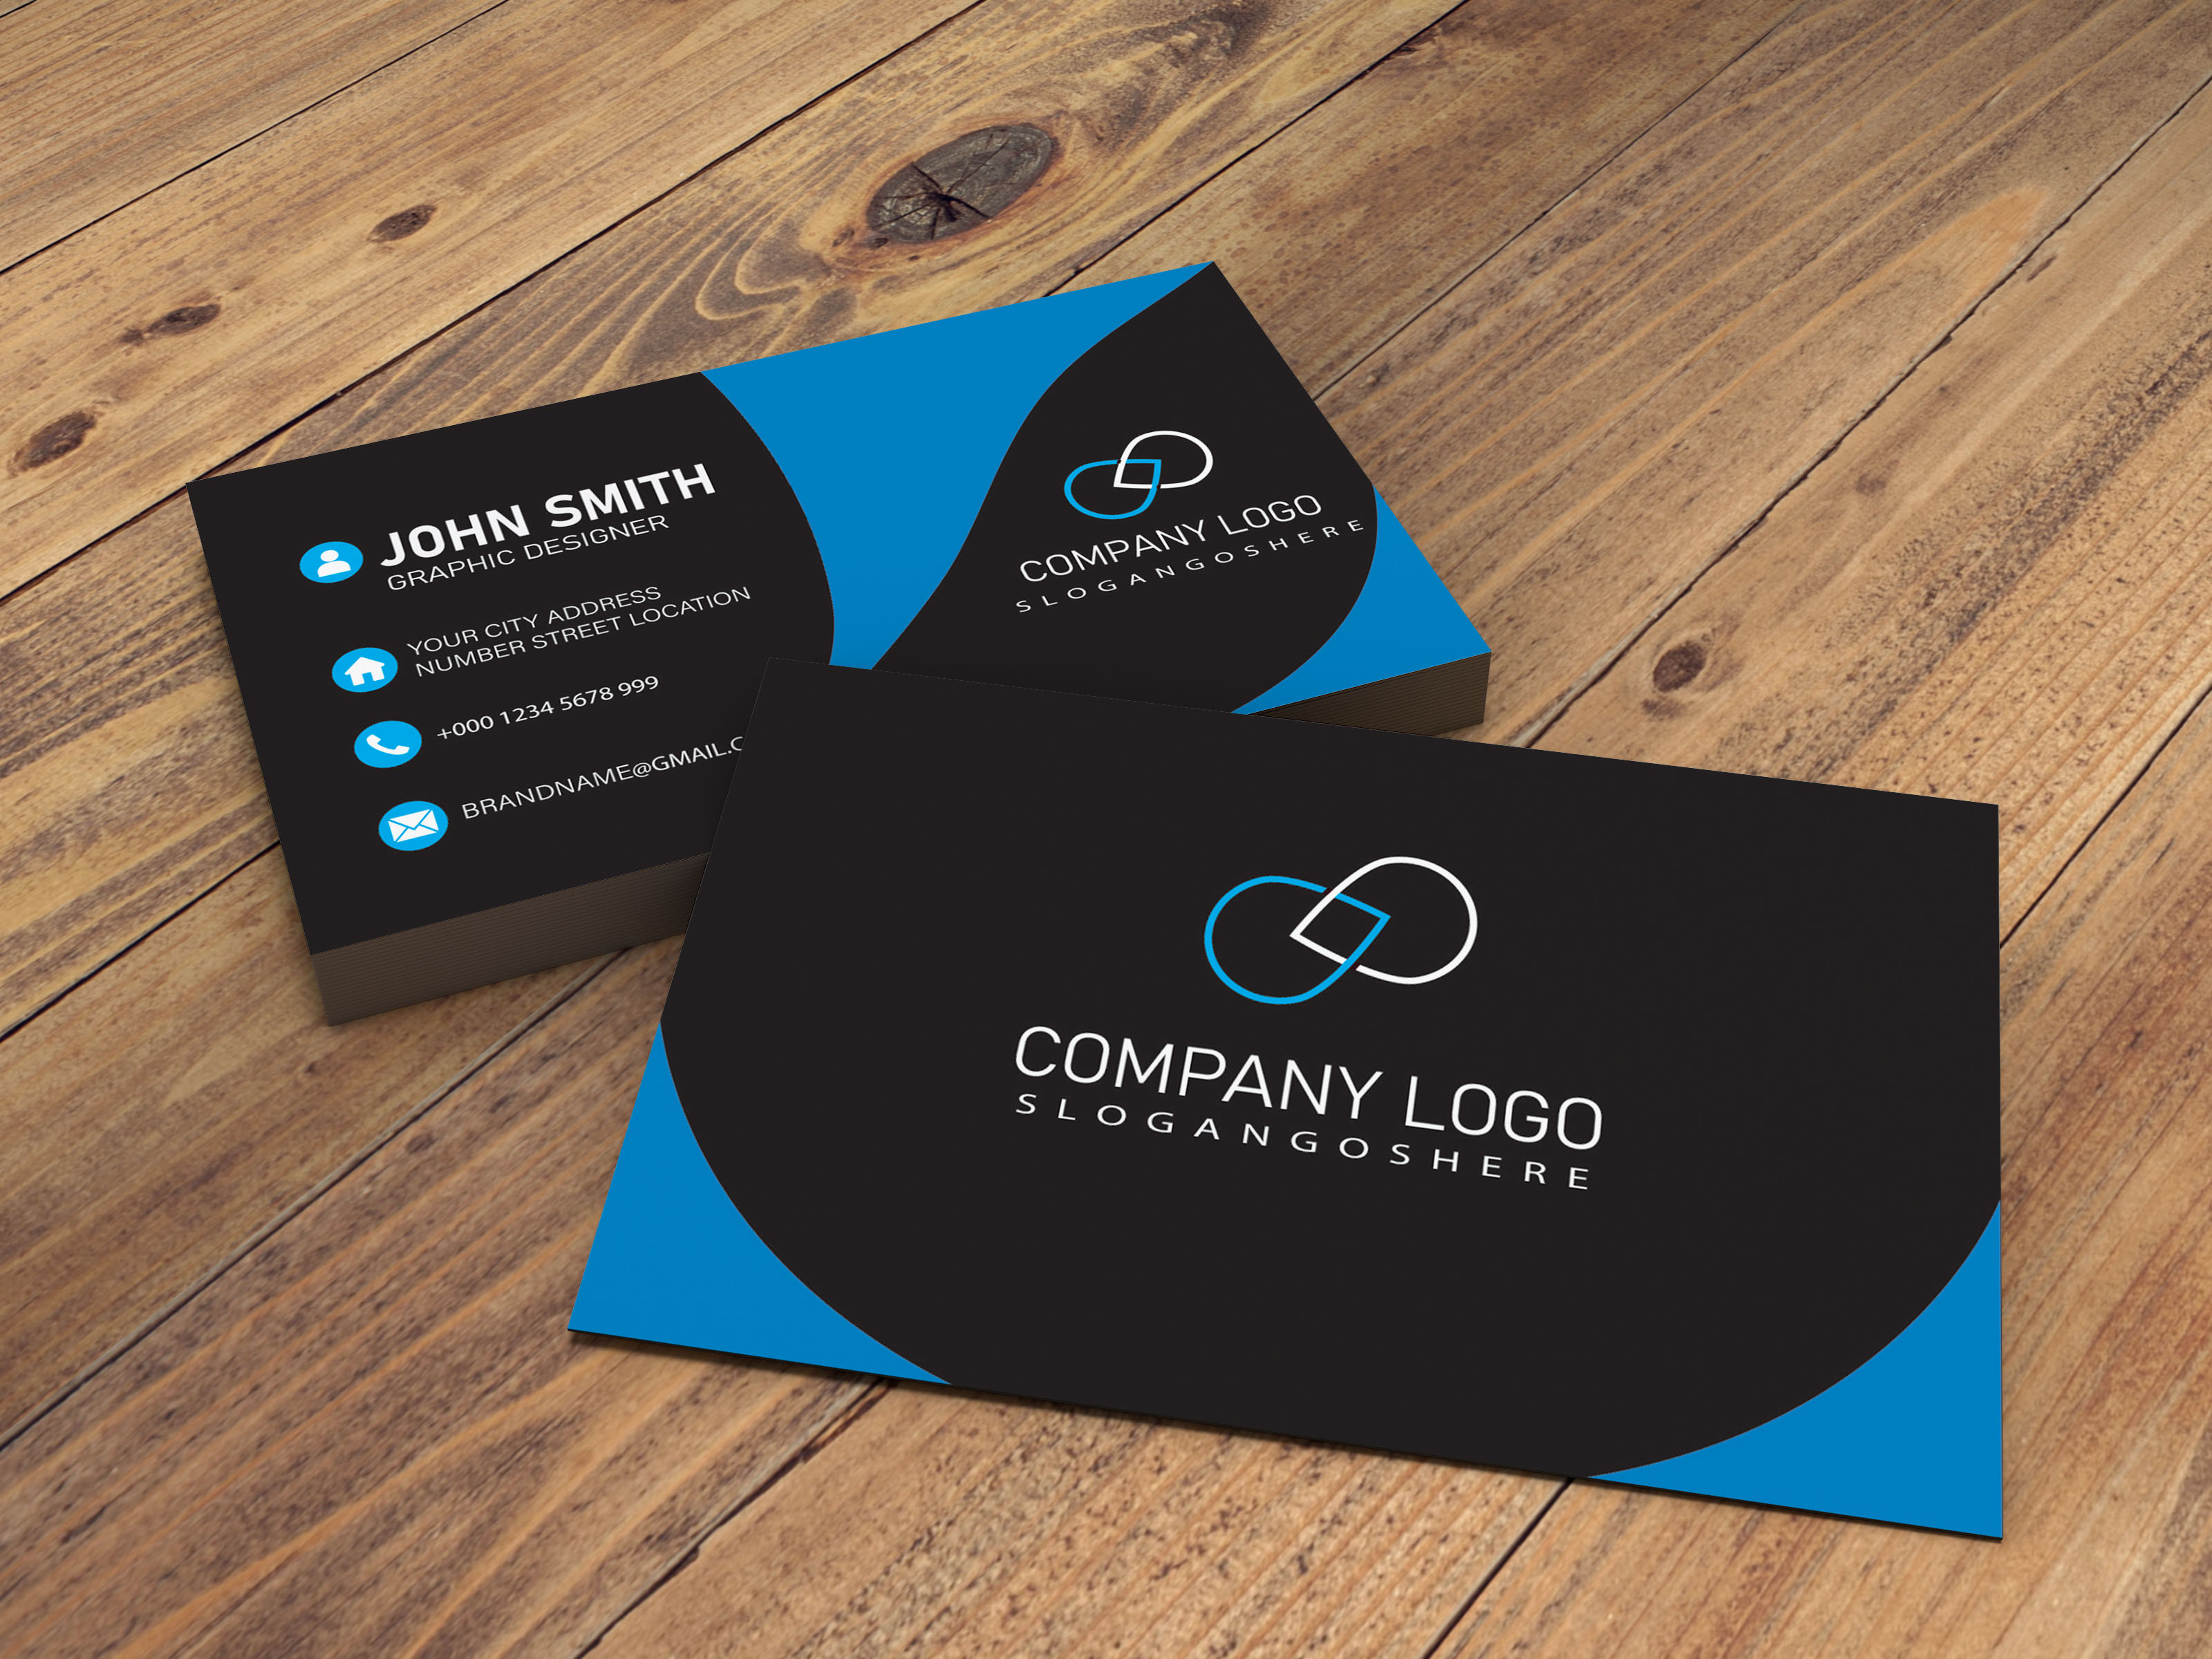 I will do create a professional business card